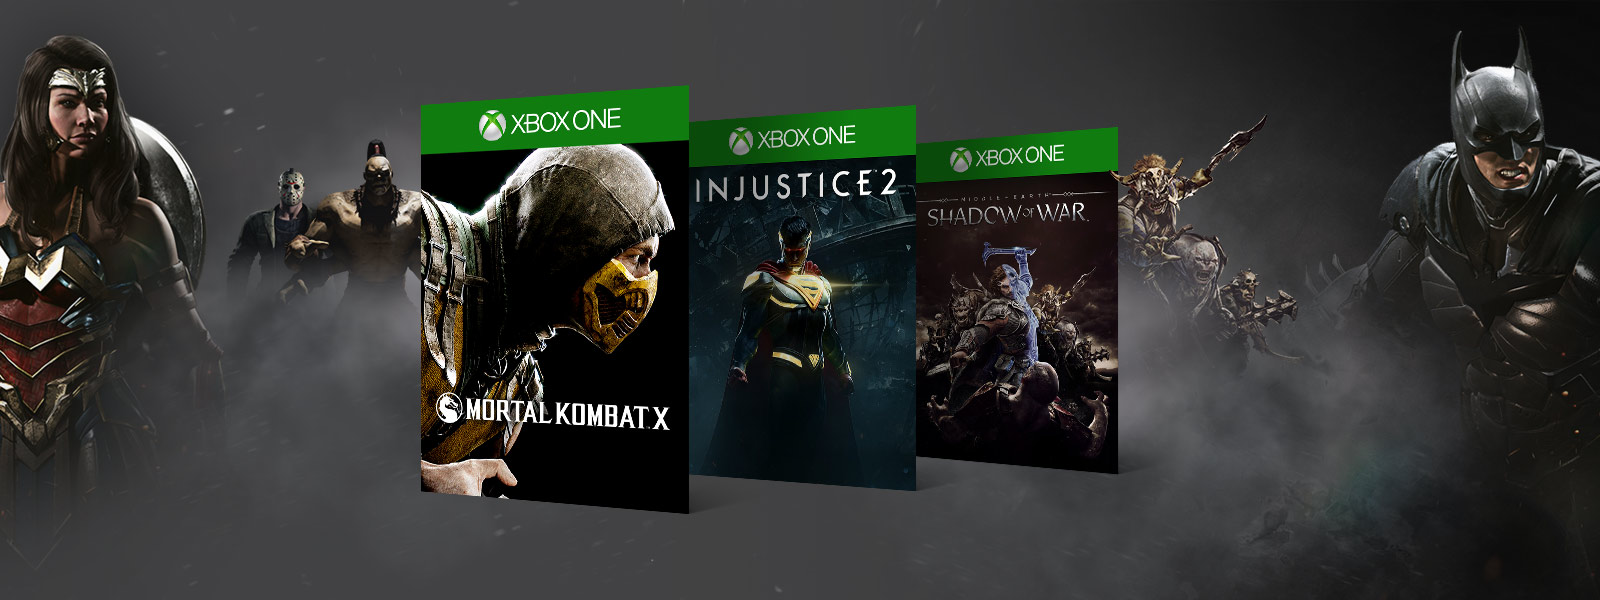 Mortal kombat X, Injustice 2, Shadow of War boxshots in front of various Warner Brothers video game characters